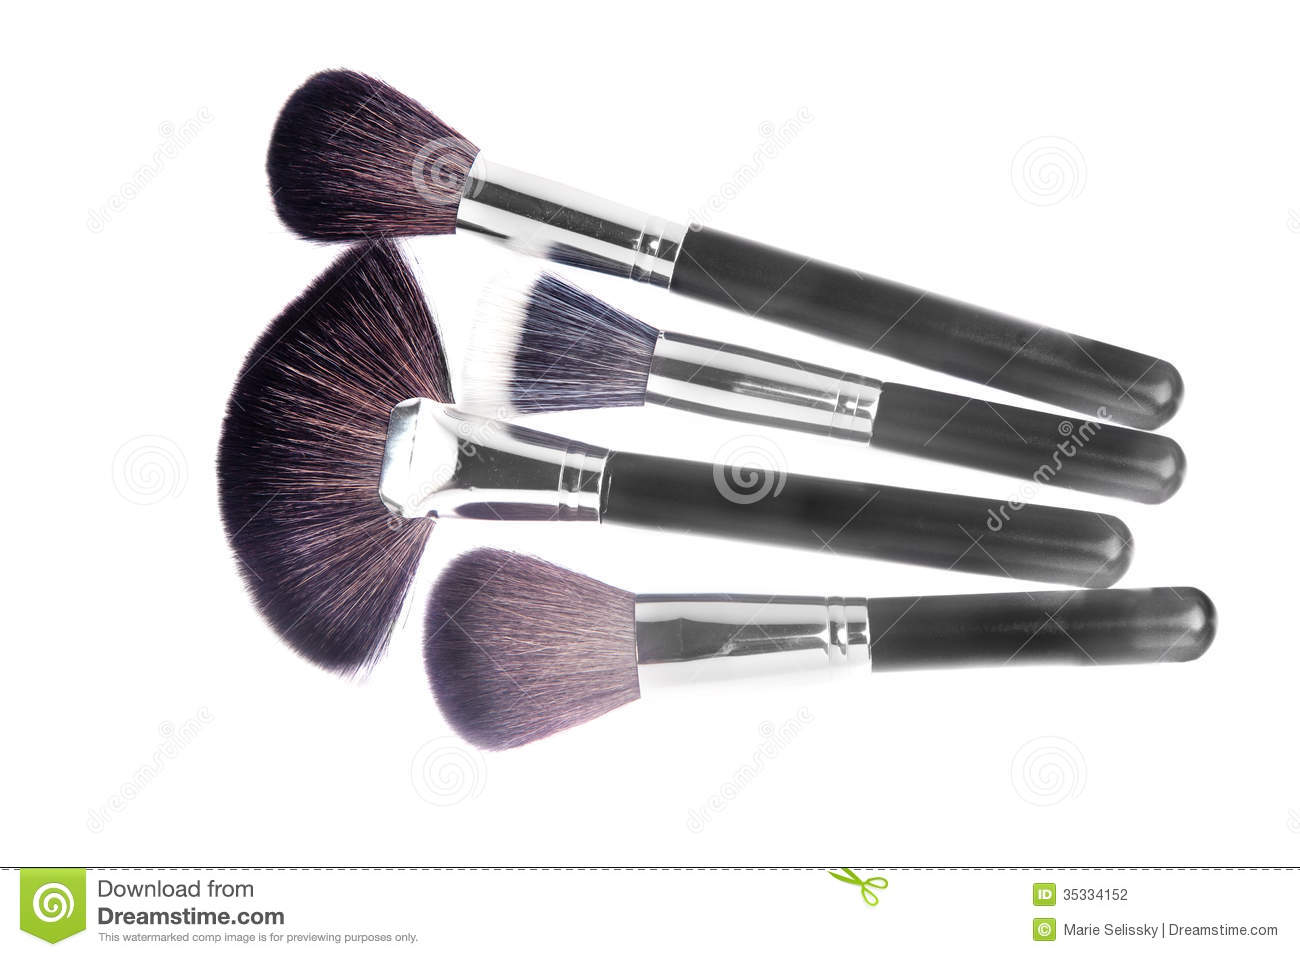 Makeup Powder Brushes Stock Photography Image 35334152